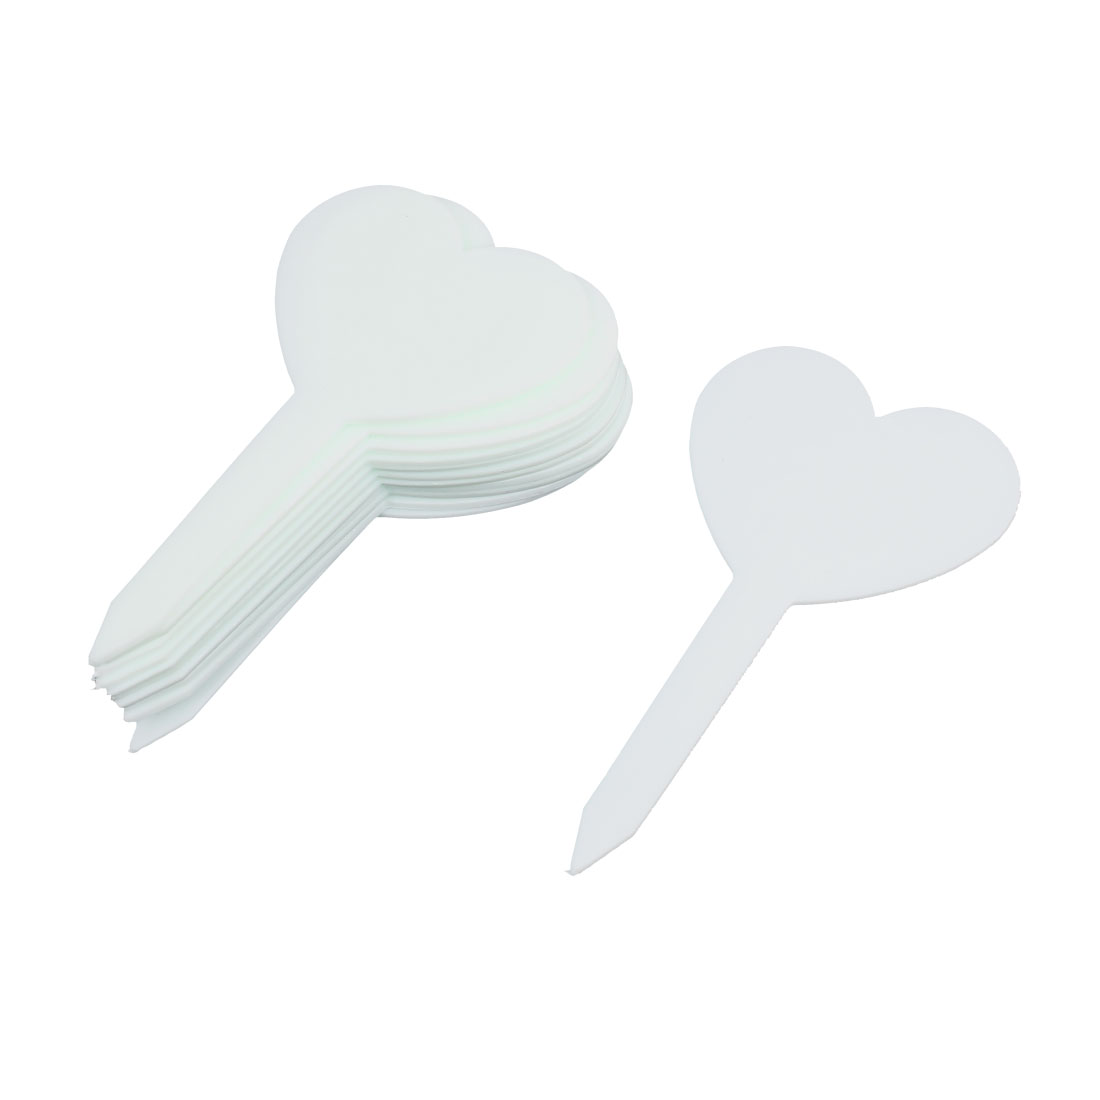 Plastic Heart Shape Nursery Garden Plant Seed Tag Label Marker Stick White 12Pcs